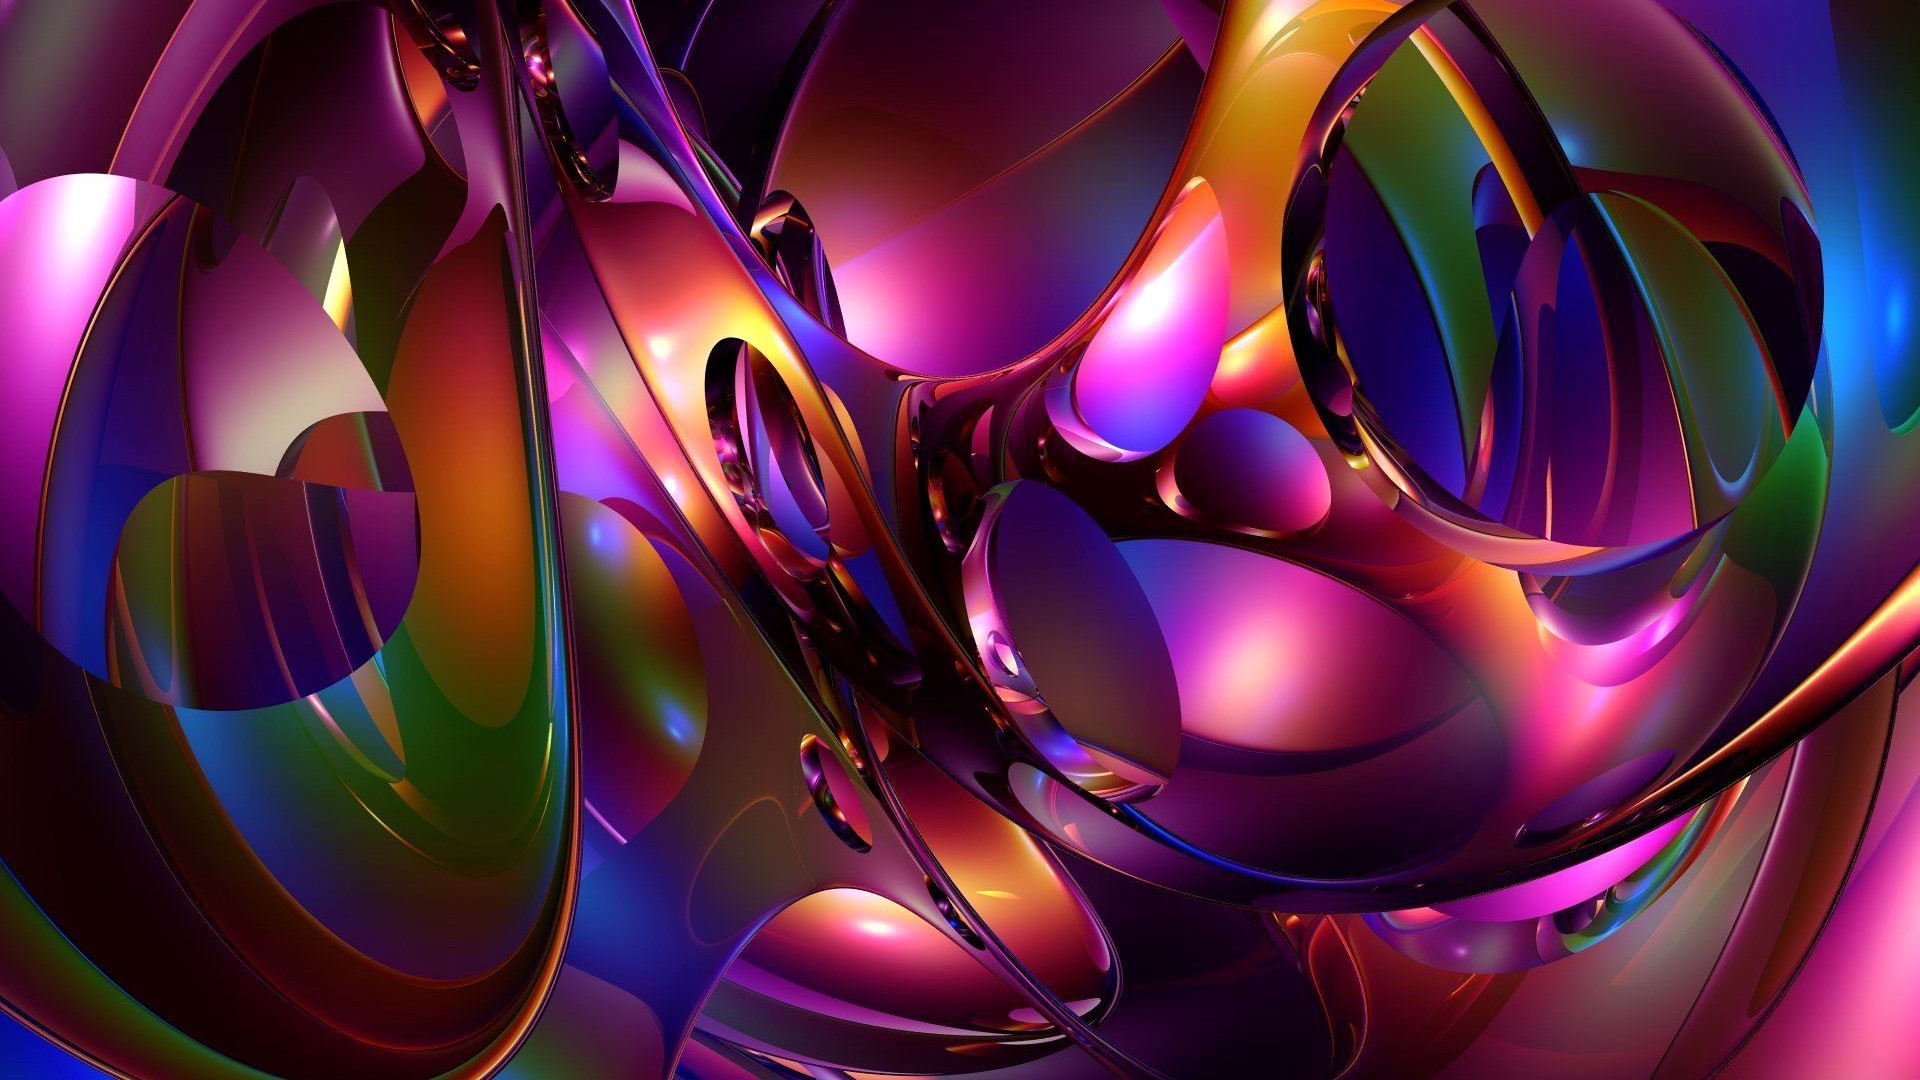 1920x1080 Cool 3D Abstract Wallpapers - WallpaperSafari Rings of smoke | Abstract  Wallpapers | Pinterest | Desktop .